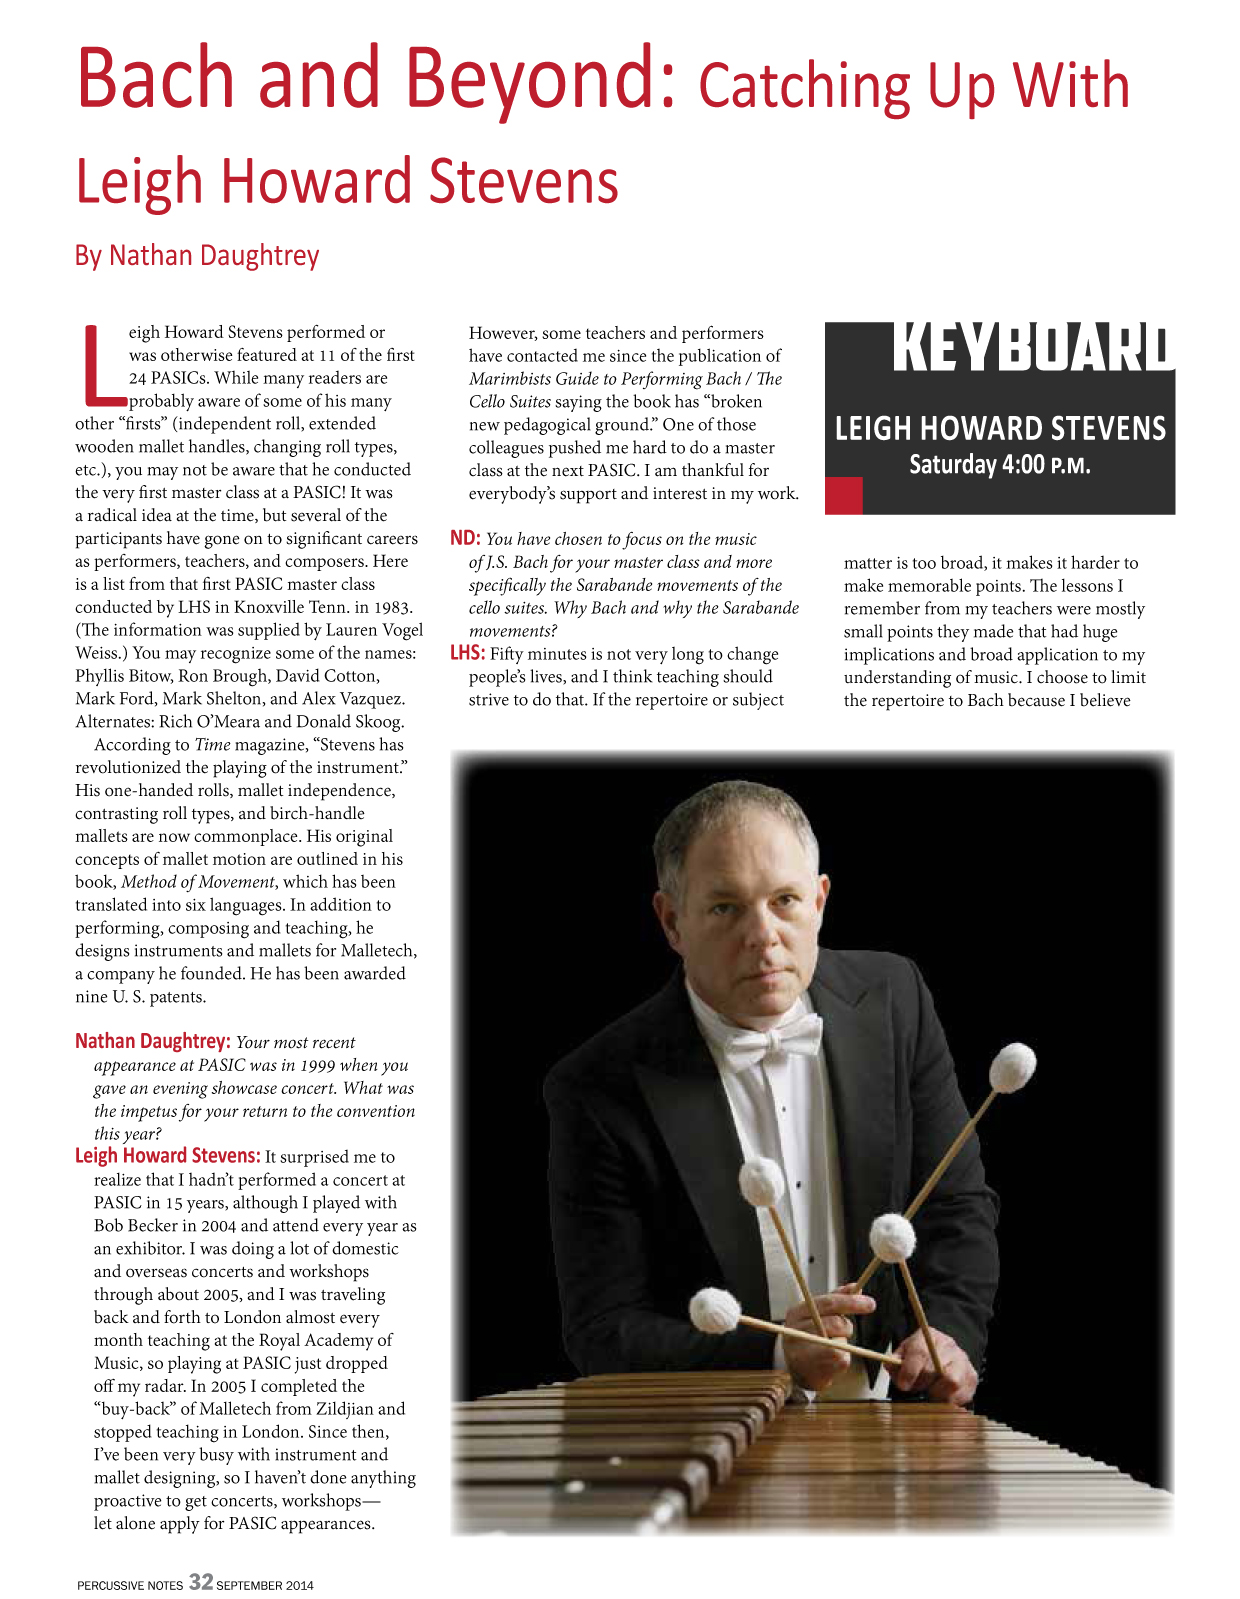 Bach and Beyond: Catching up with Leigh Howard Stevens